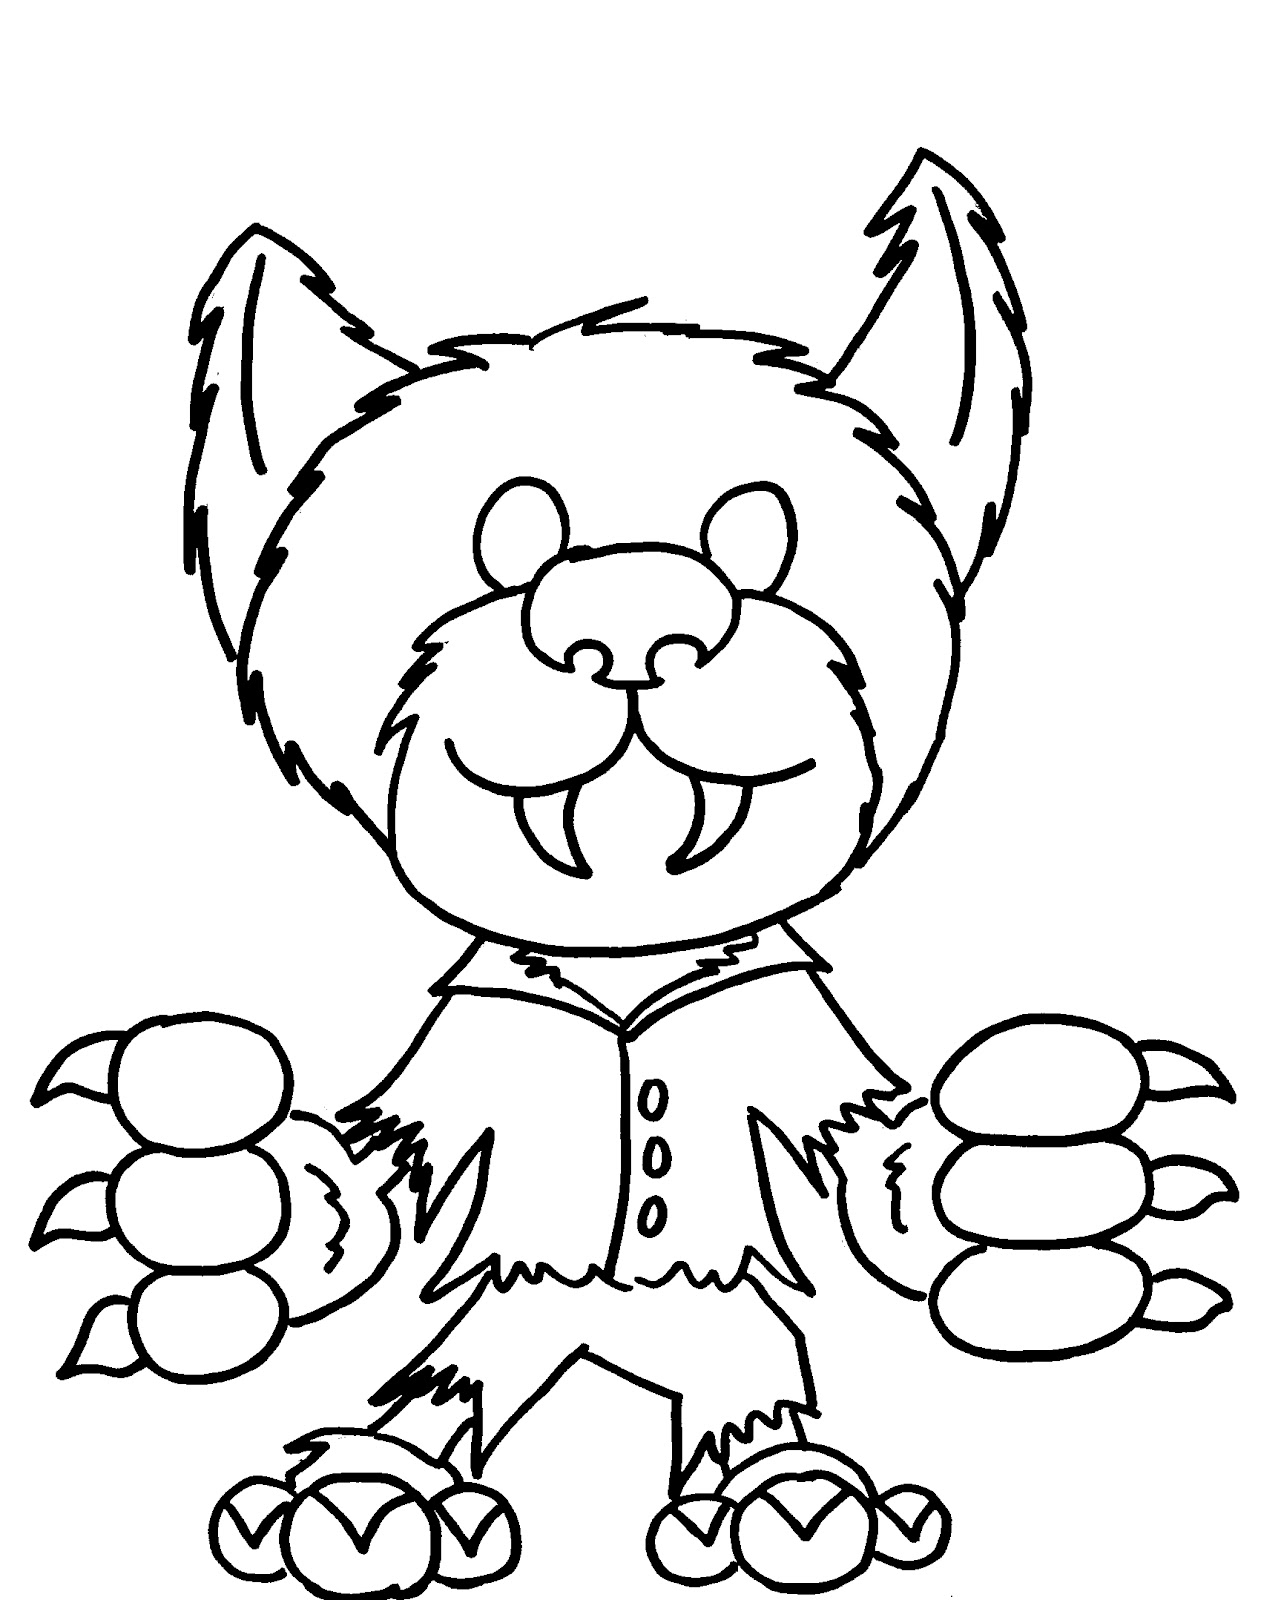 cute halloween coloring pages halloween coloring sheets for celebrating halloween k5 pages coloring halloween cute